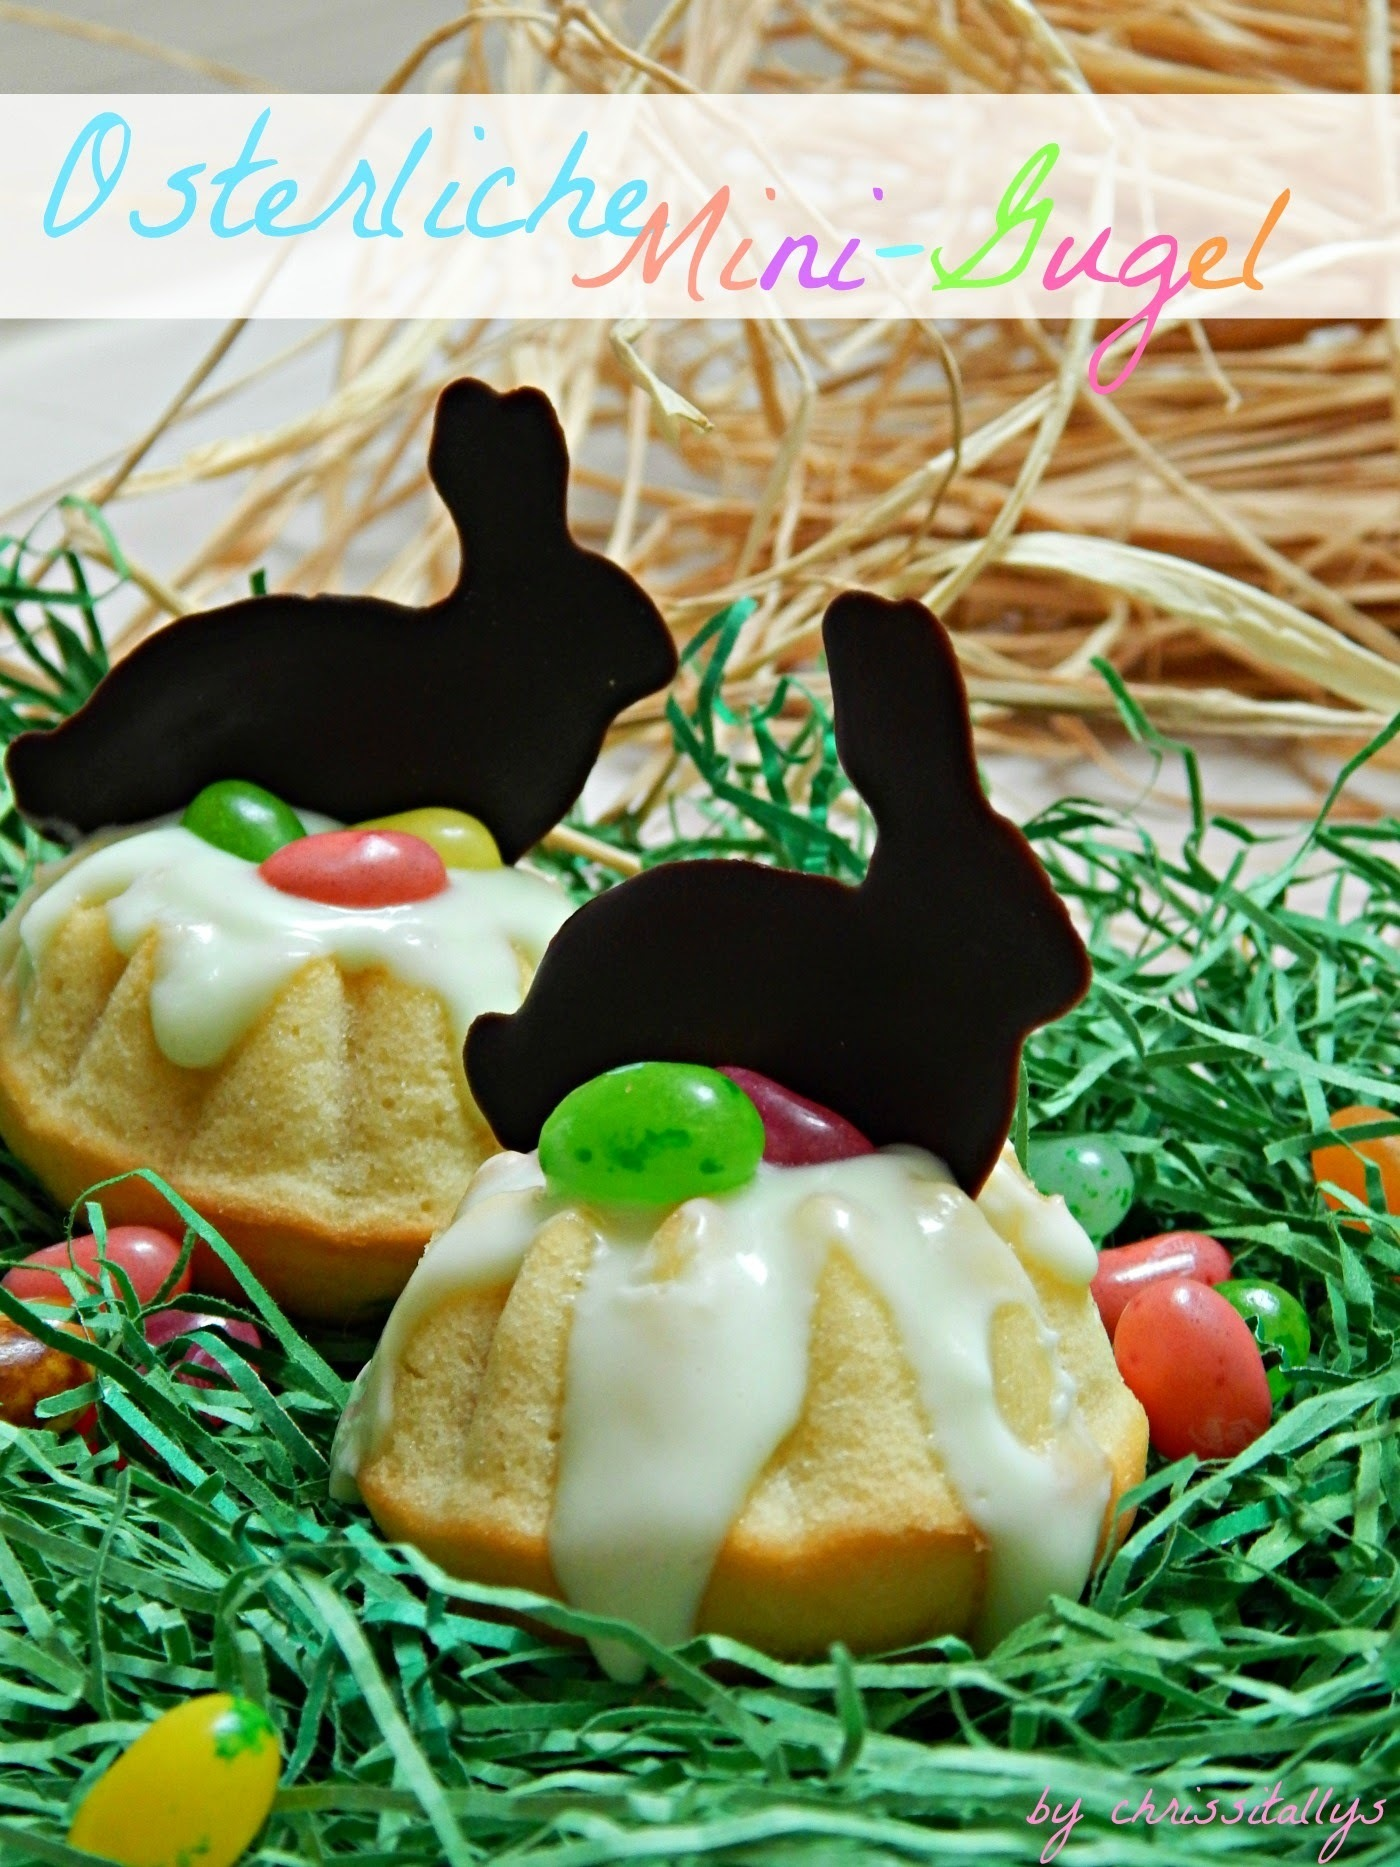 Easter mini ring cakes/ osterliche Mini-Gugel